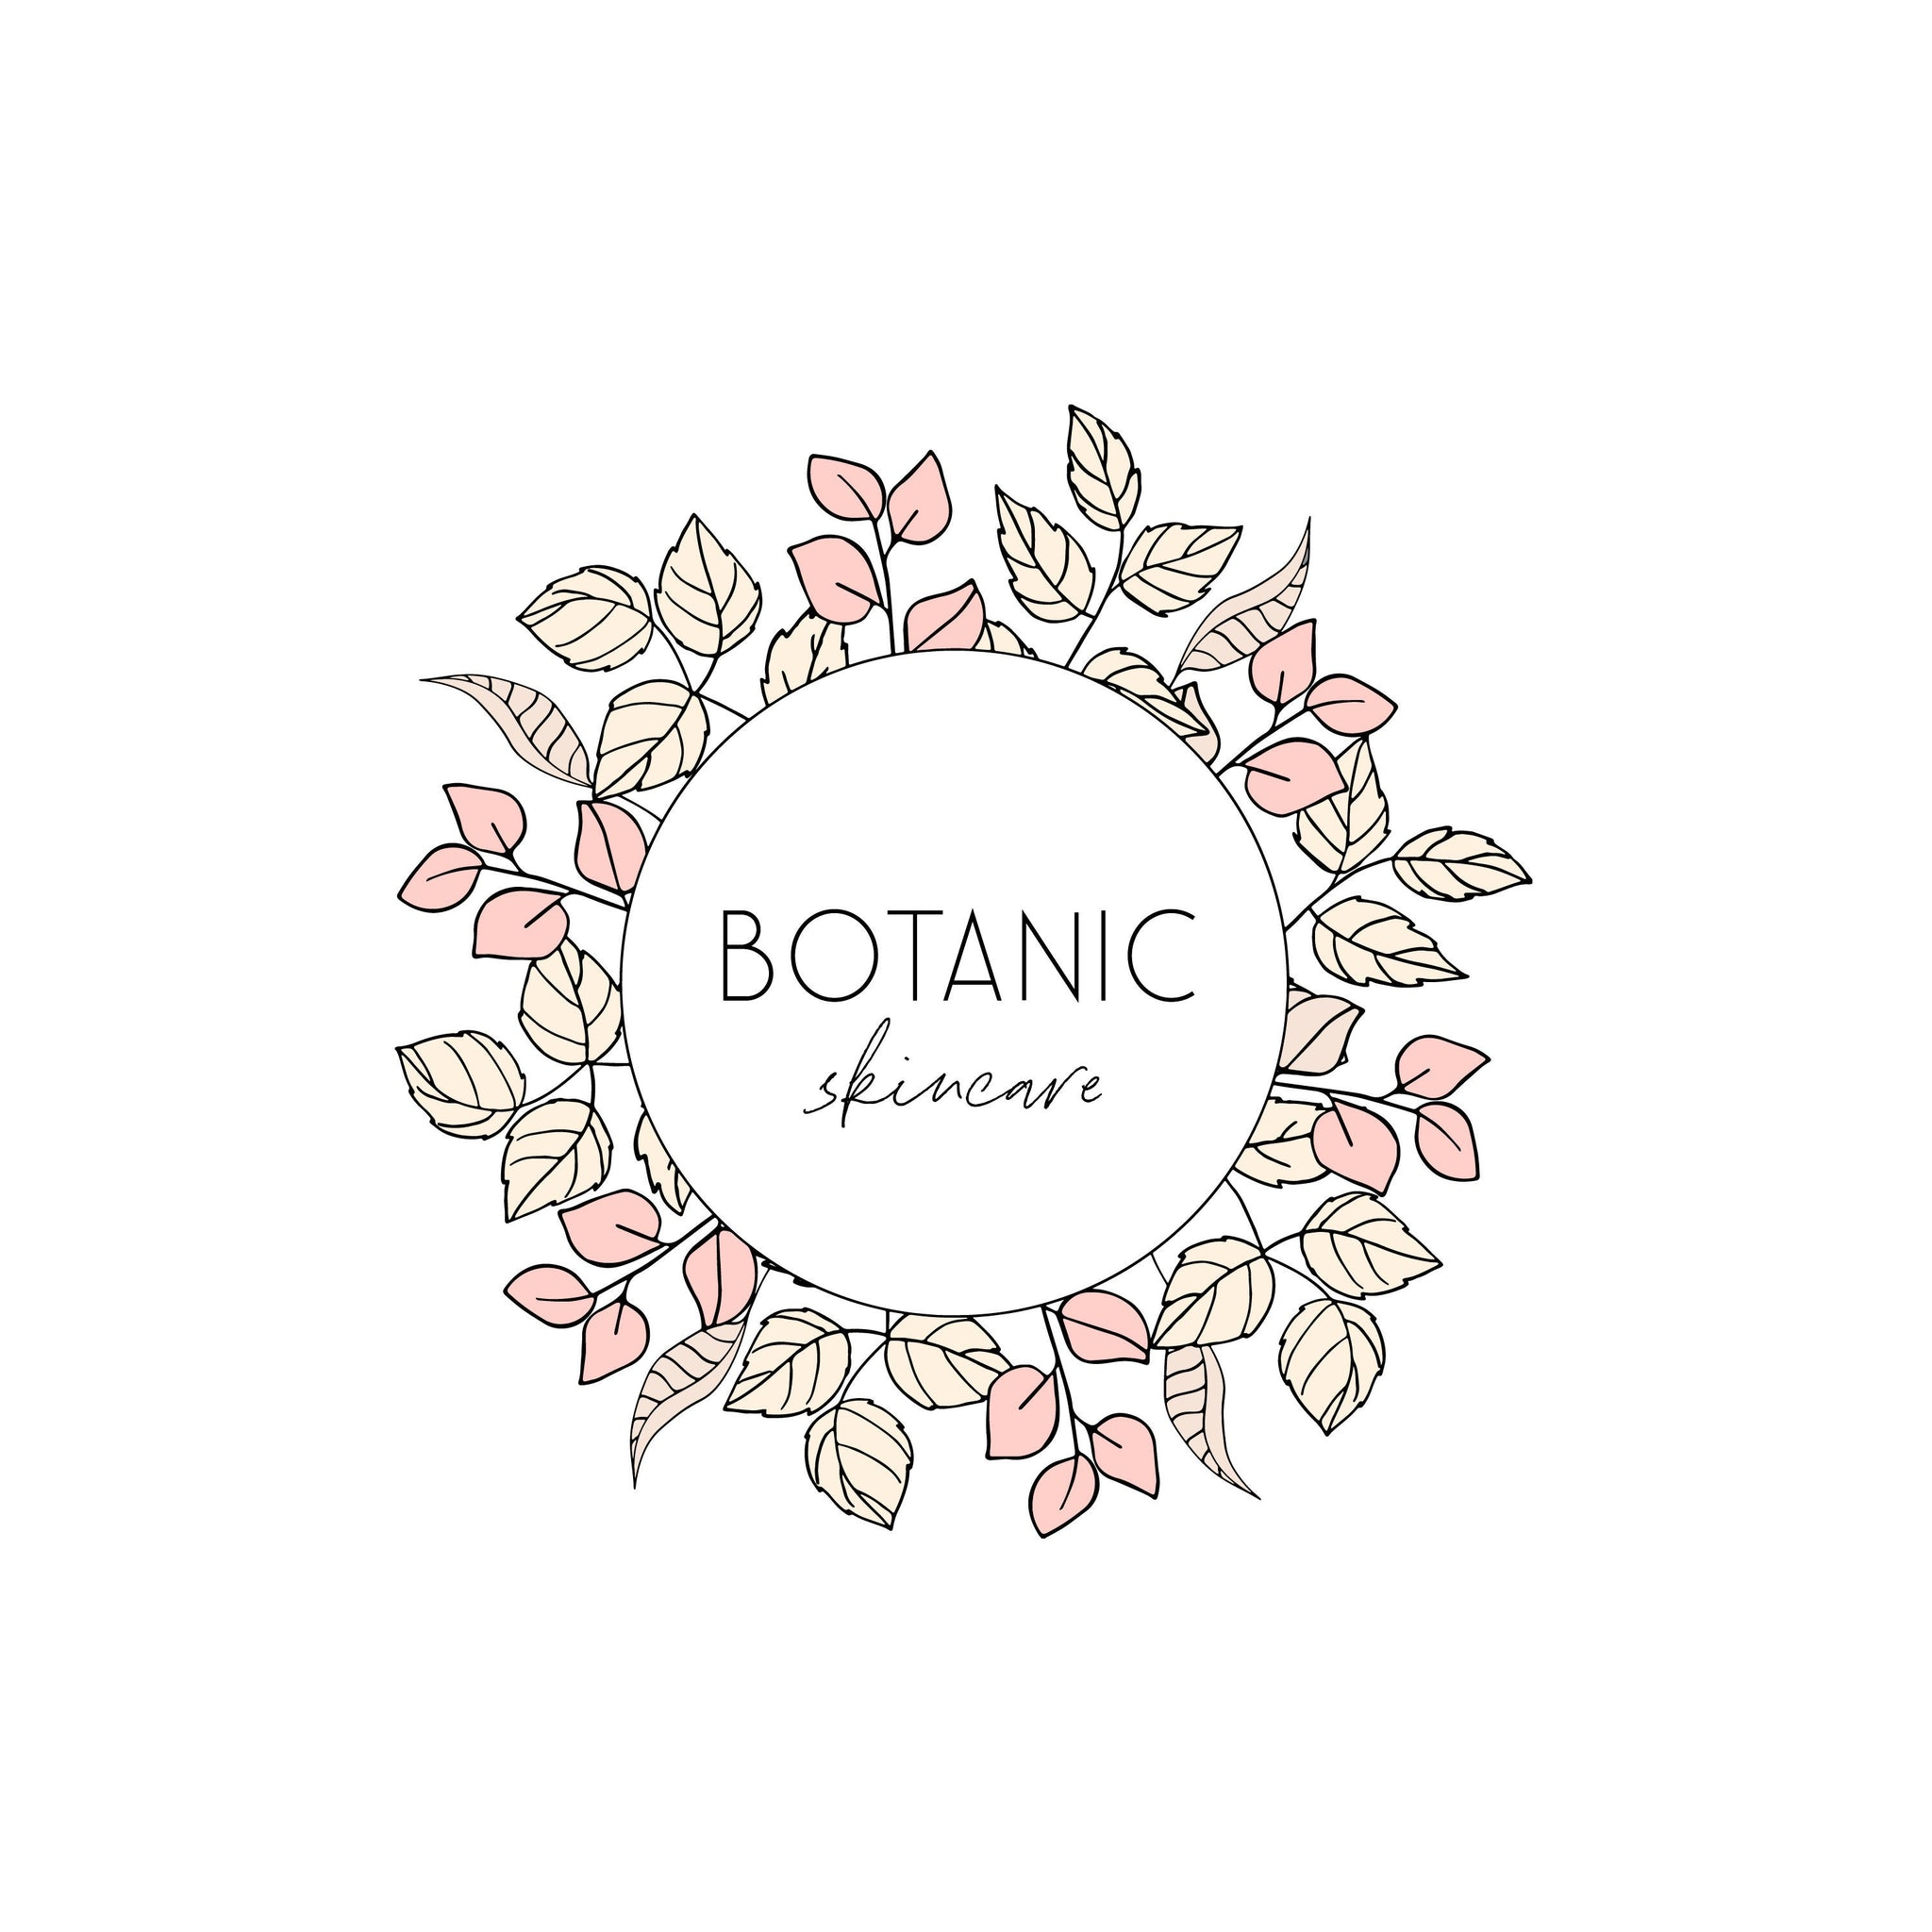 Blush Leaf logo design, Photography branding Business logo design, Pre made Logo and Watermark, Unique Circular Floral Beauty logo branding